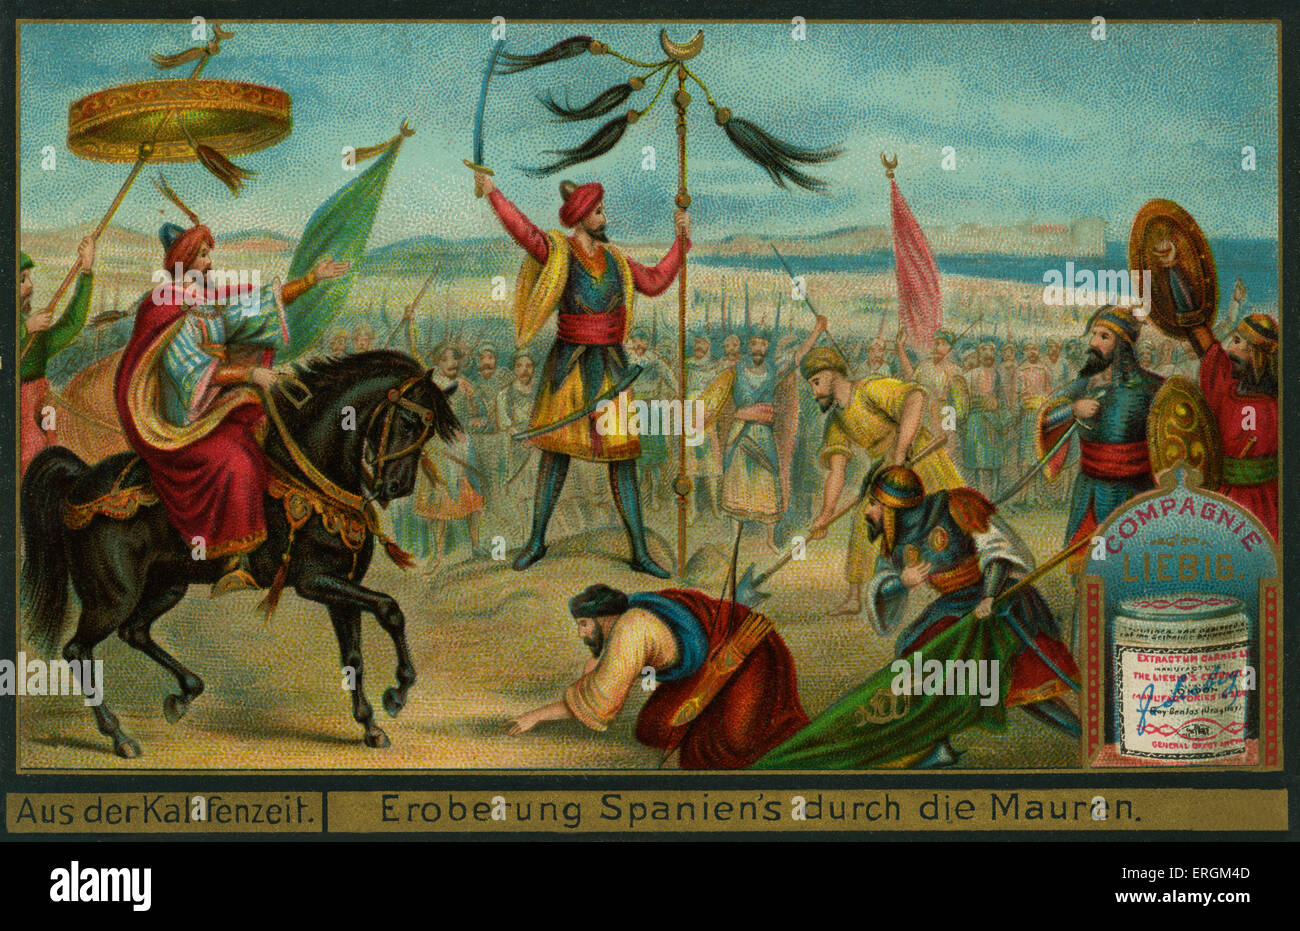 The Moors conquer Spain, 711 AD. (German: Eroberung Spaniens durch die Mauren) .Liebig card, Episodes from the Caliphate, Stock Photo